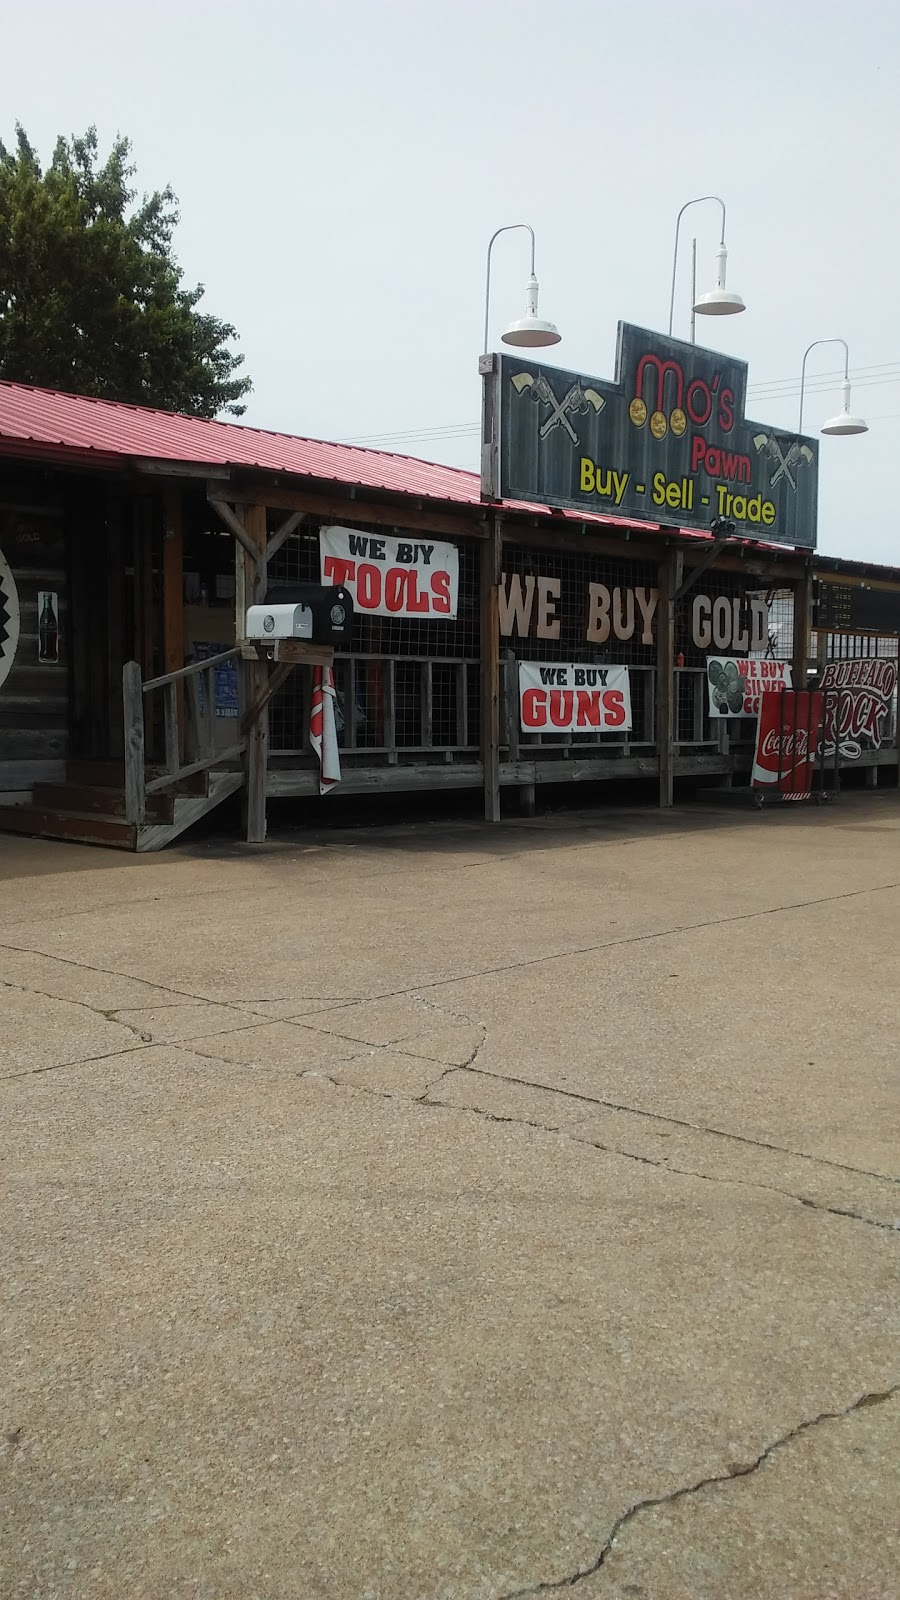 Payday loans in georgia photo 8